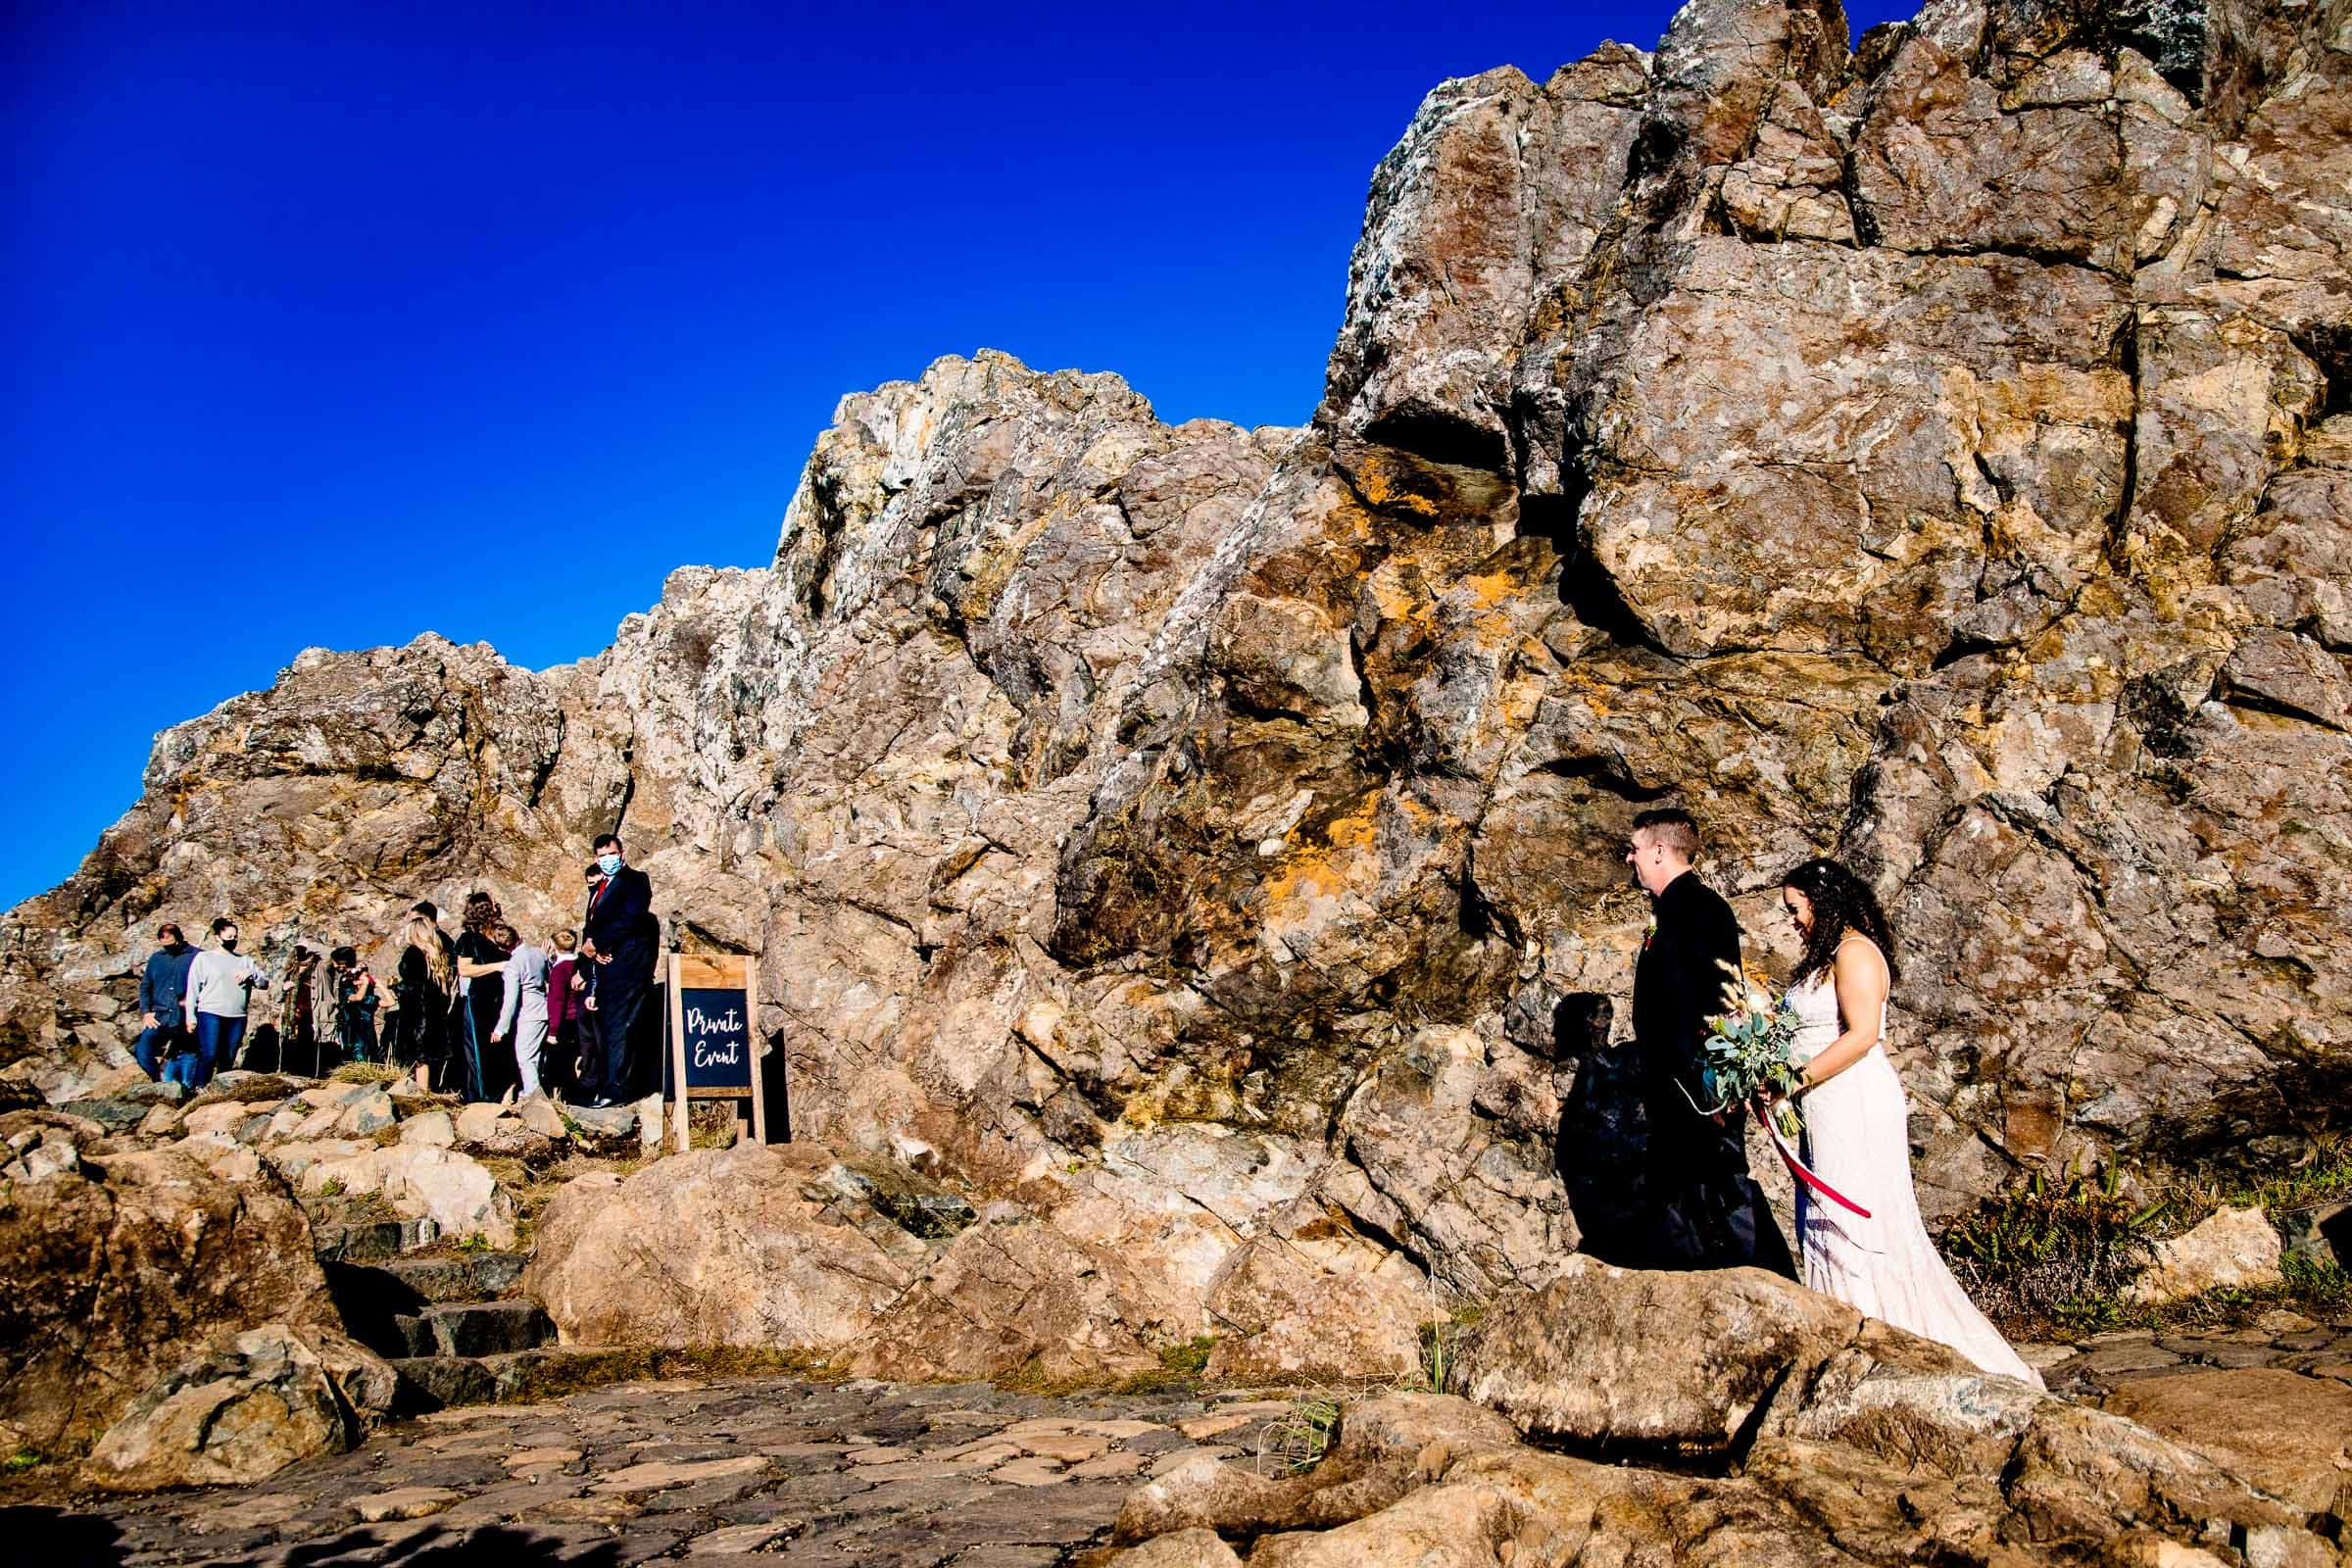 Bride and groom walking on Wedding Rock into their Trinidad elopement ceremony near Humboldt California